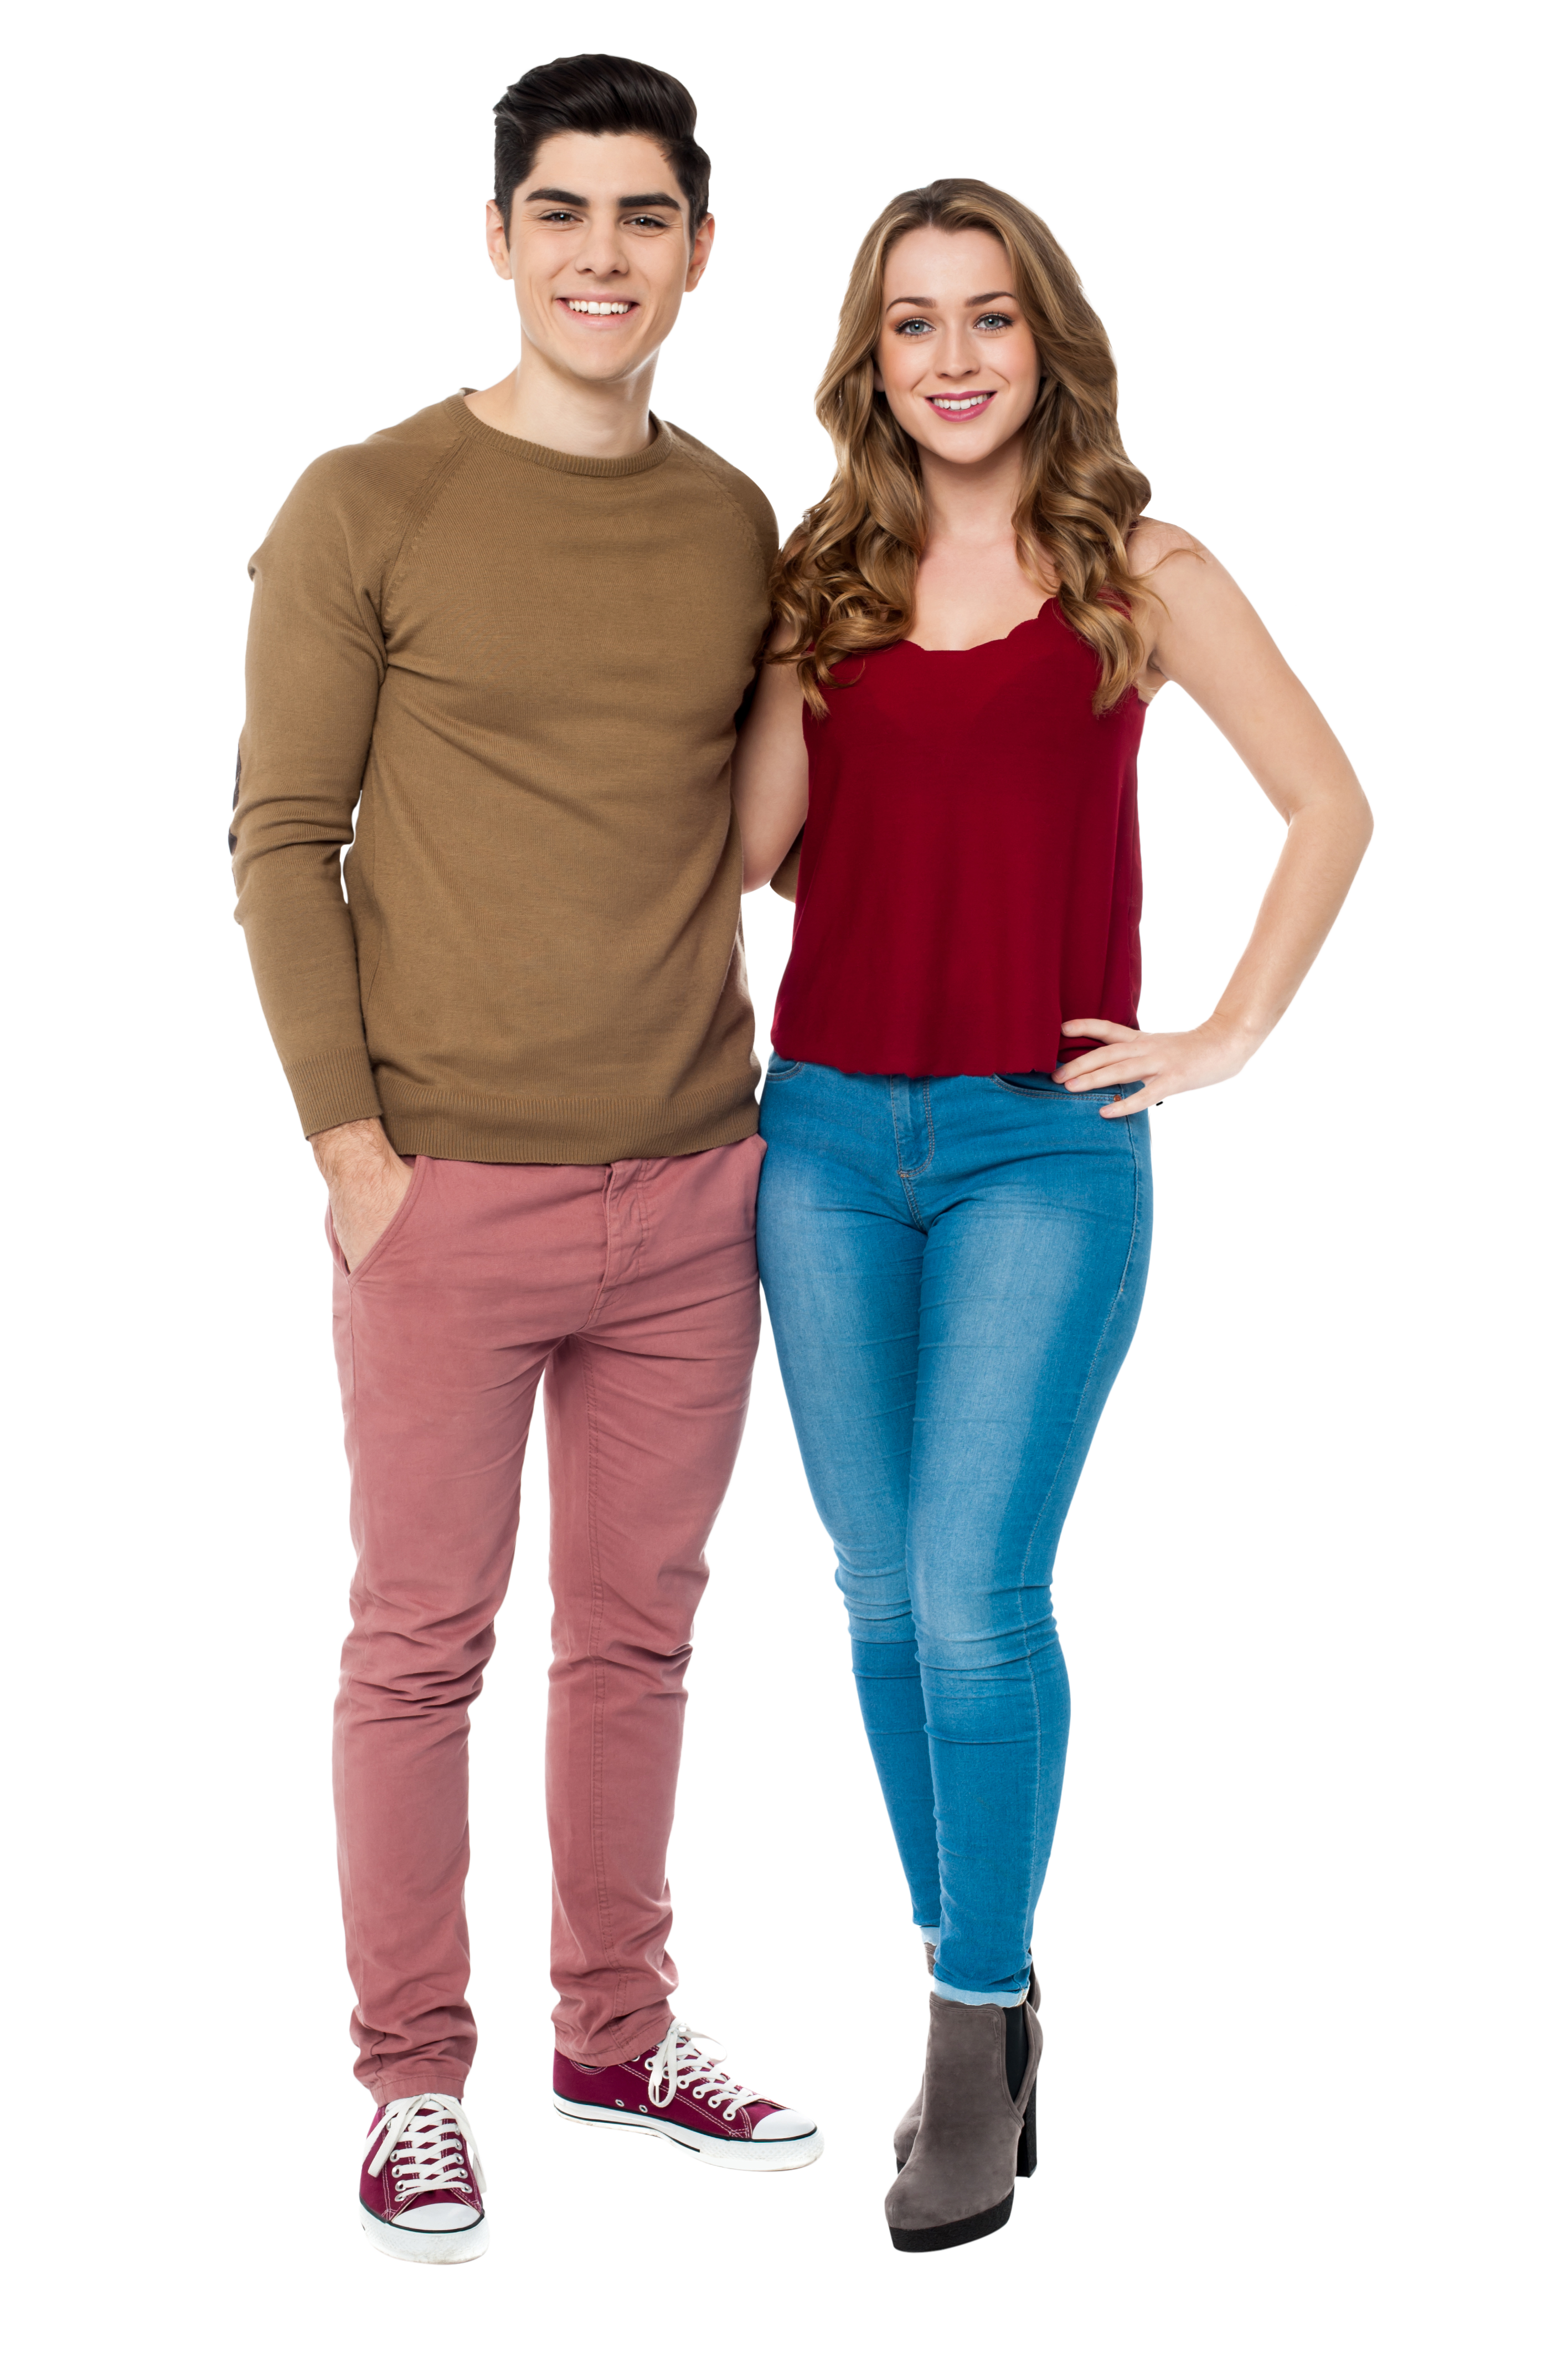 Couple standing png. Image purepng free transparent